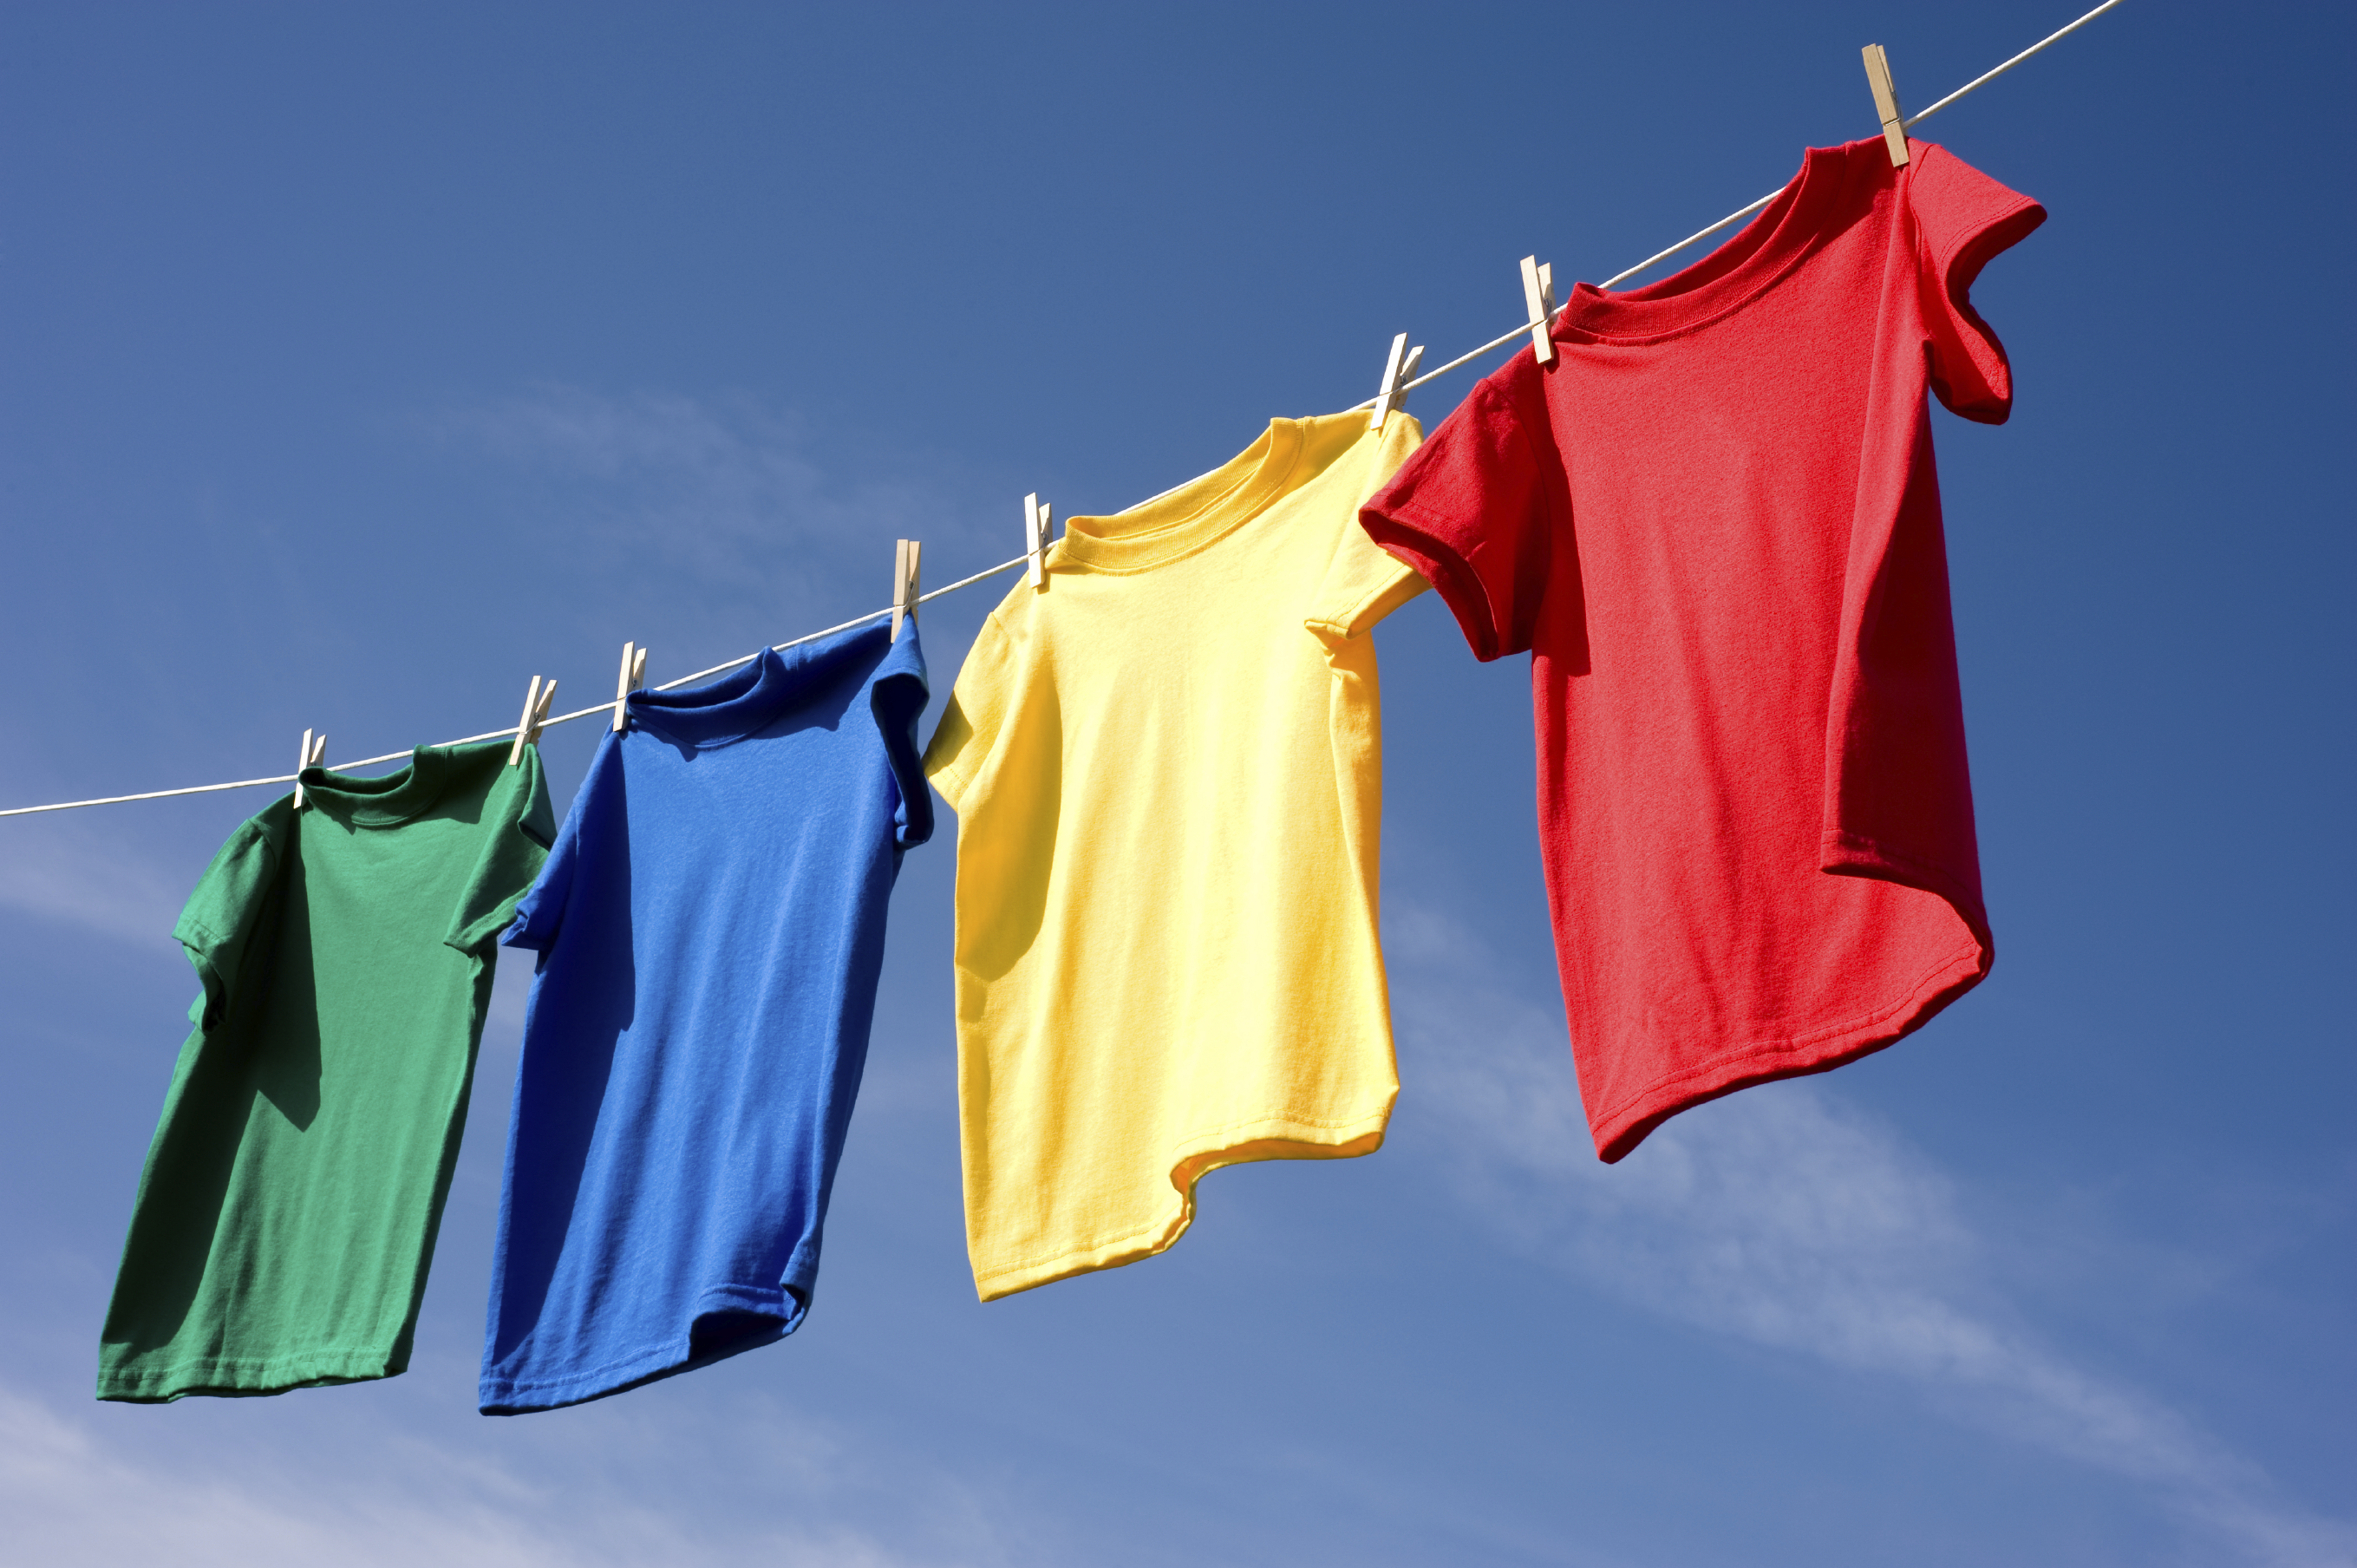 Let It All Hang Out Air Dry Your Laundry Take Action